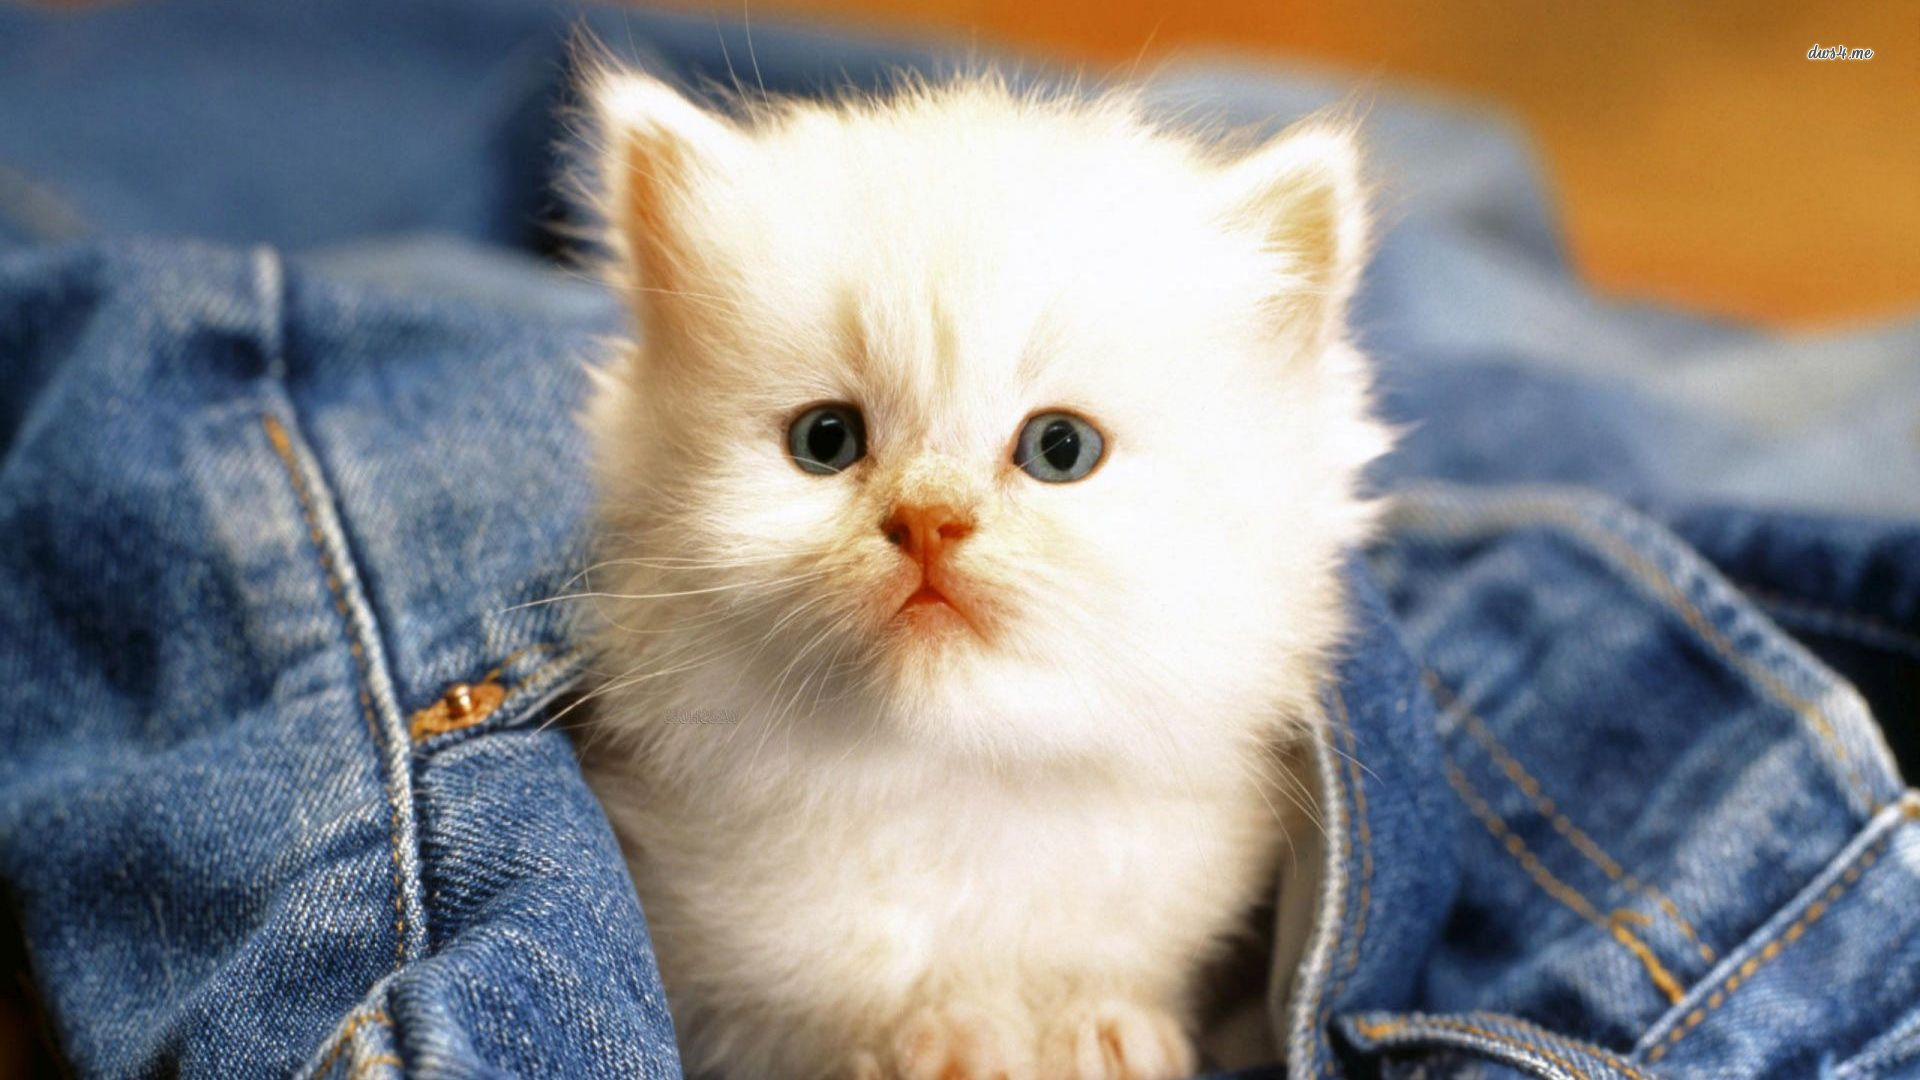 Cute White Cat Wallpaper Animal Wallpapers 27935 Litle Pups 1920x1080